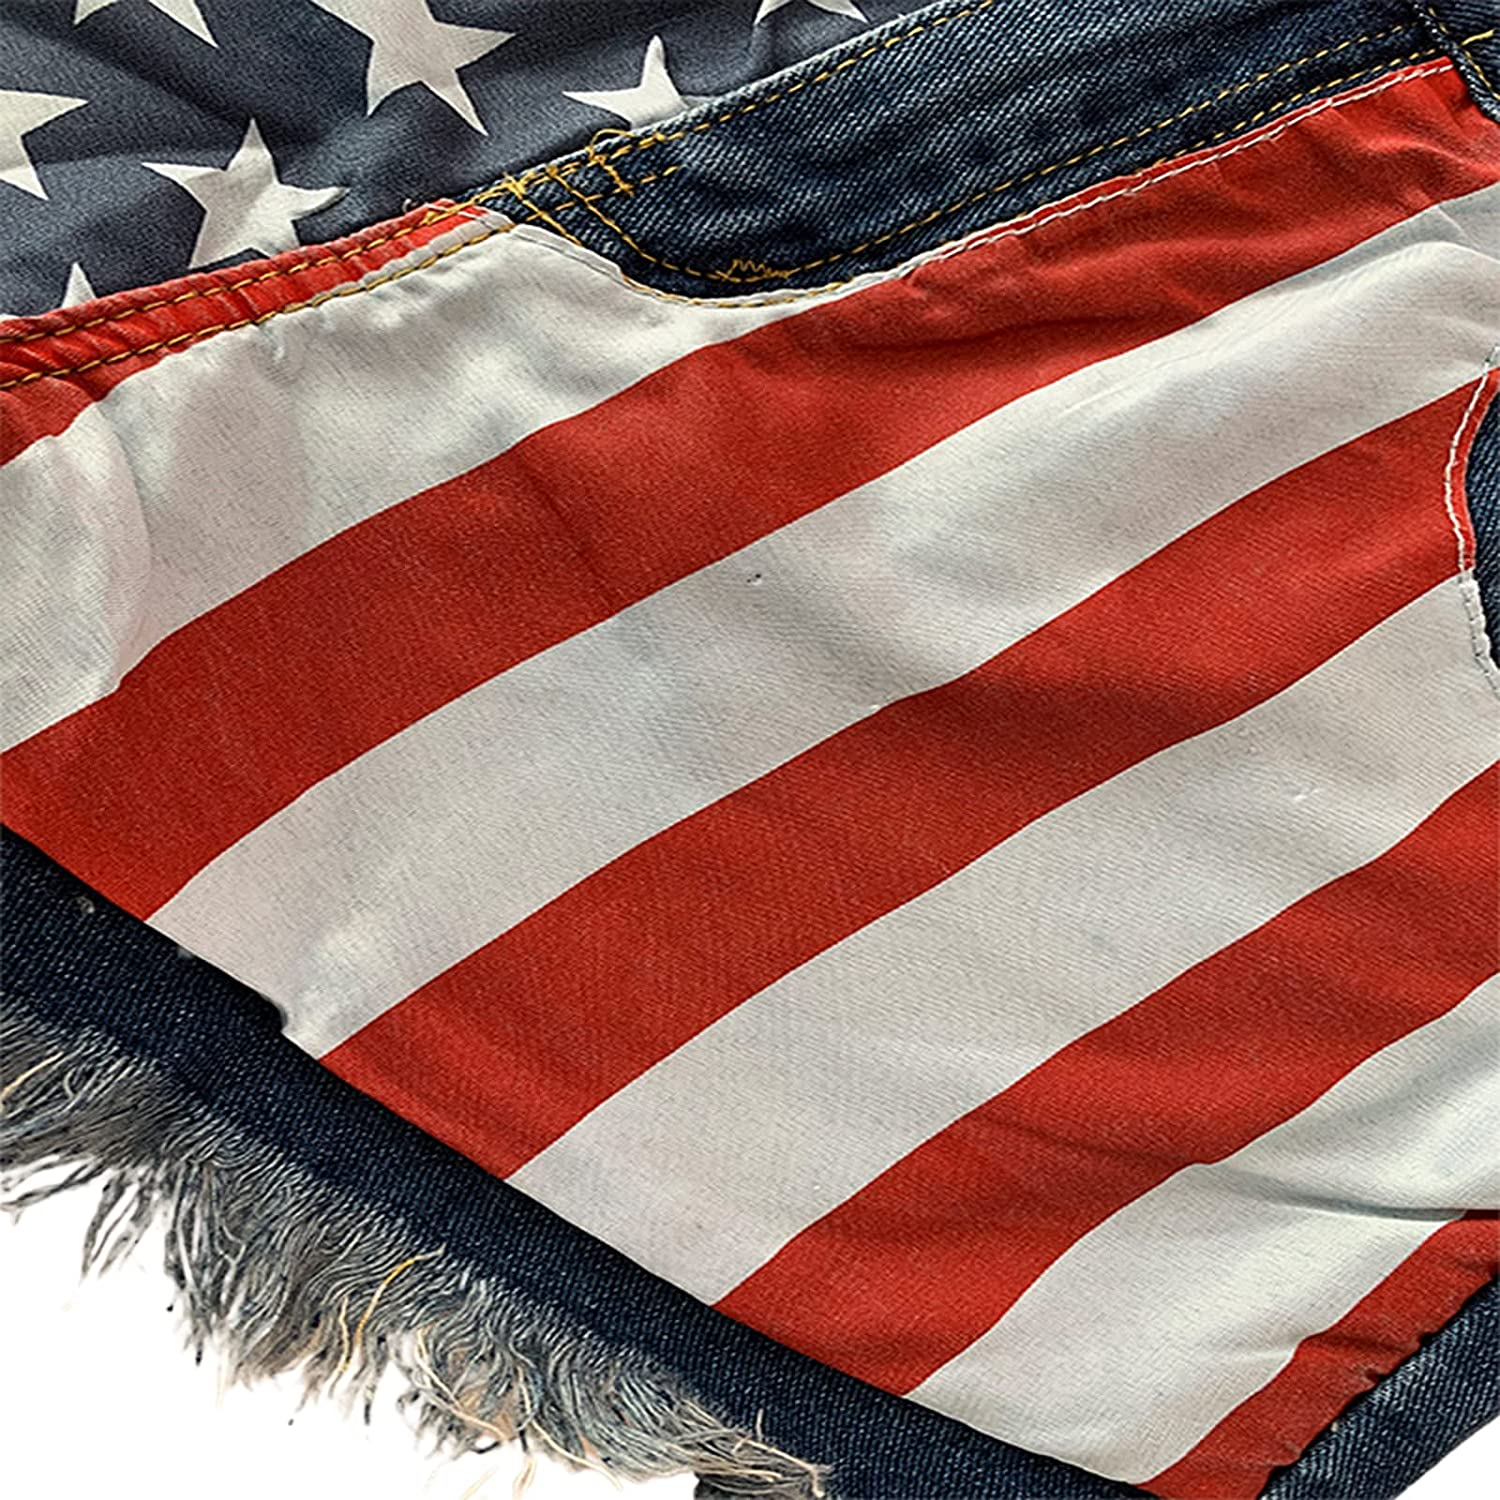 Women's Frayed Distressed Jeans Raw Ripped Denim Shorts American Flag Star Print Hot Shorts Comfy Stretchy